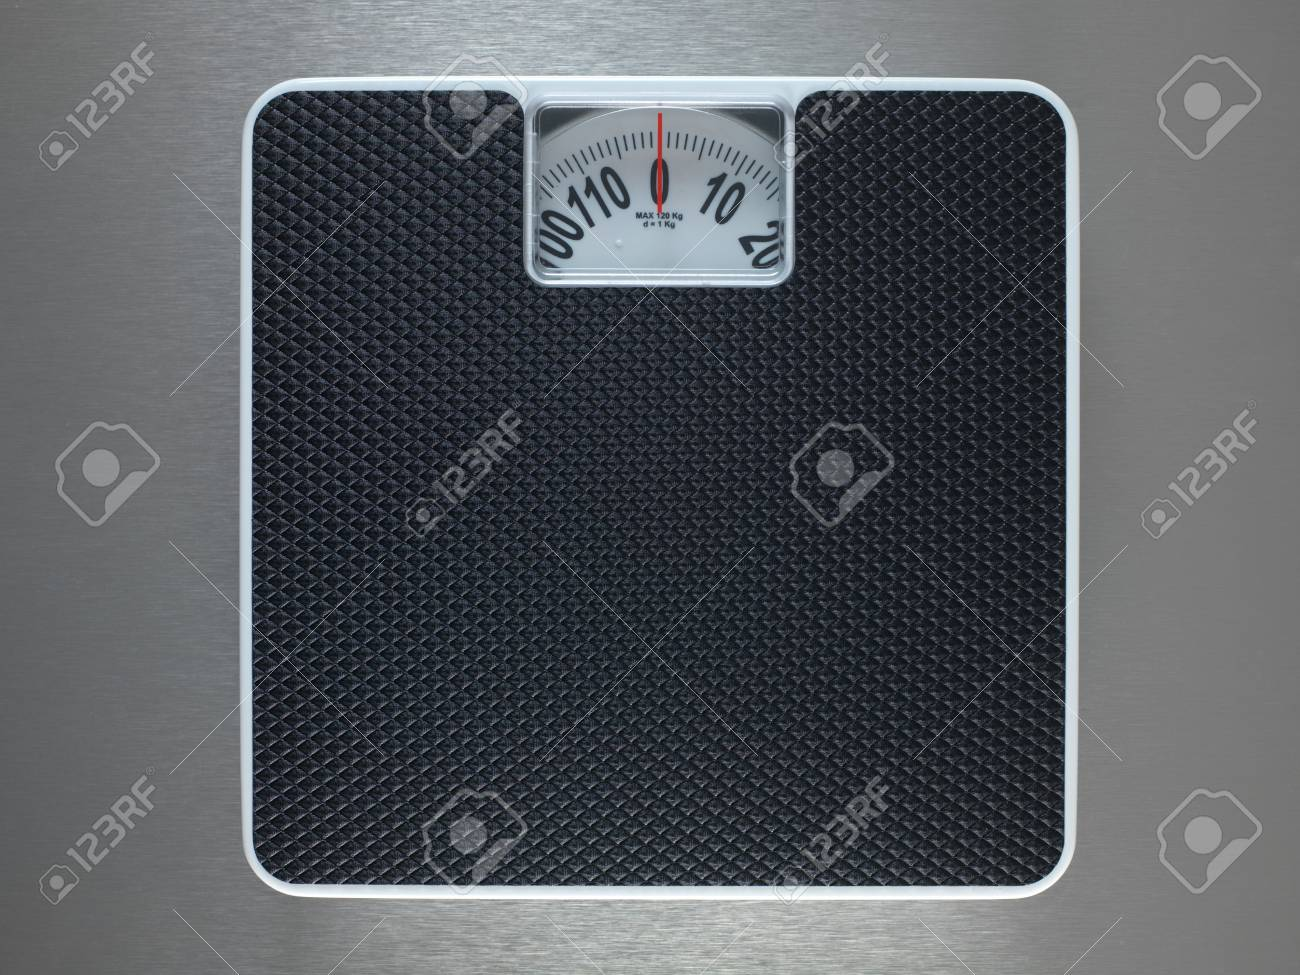 Bathroom scales isolated against a metallic background Stock Photo - 10485991